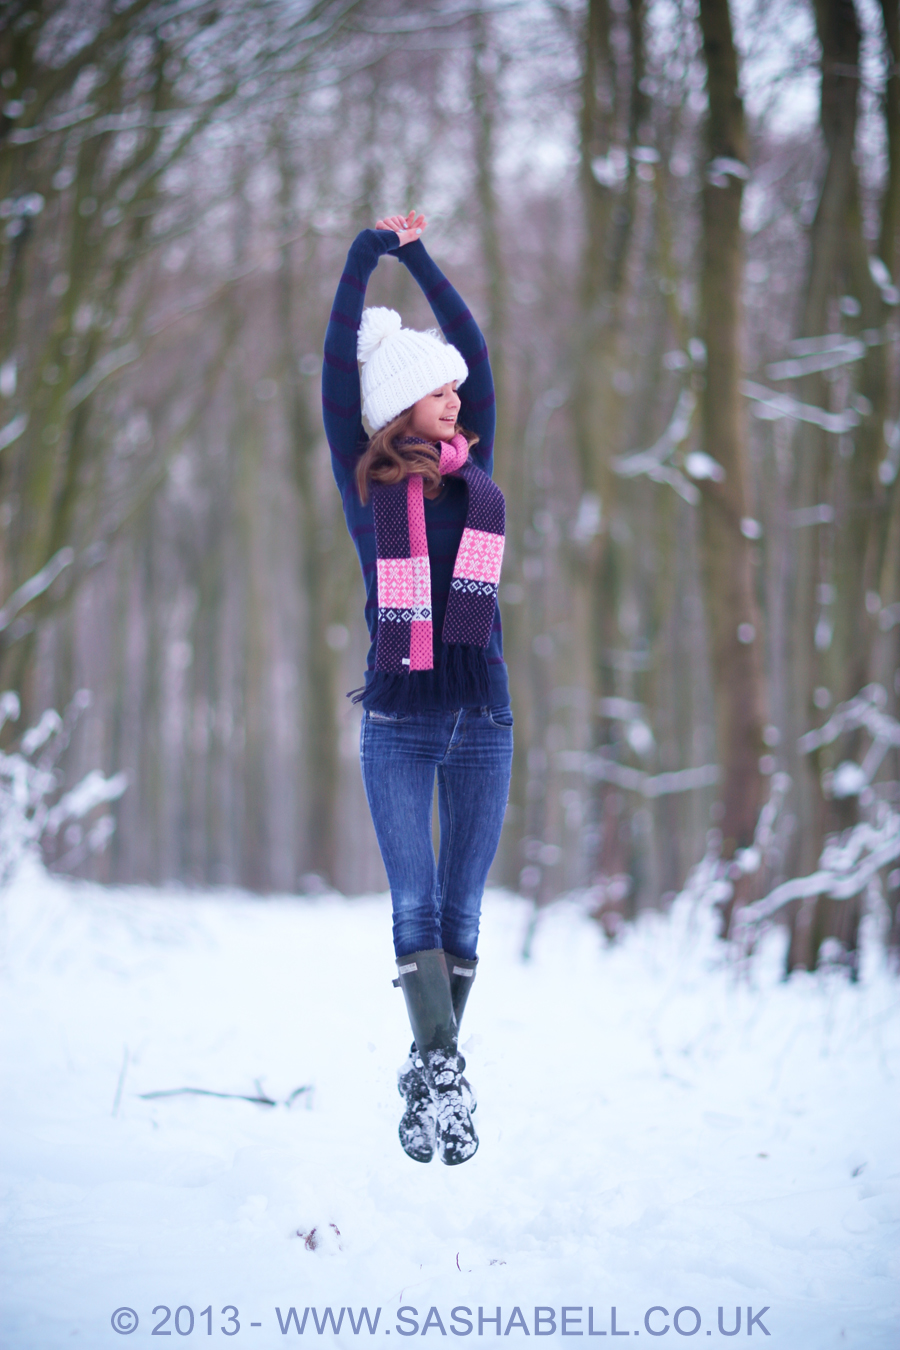 Snow Jumping – Day 119/365